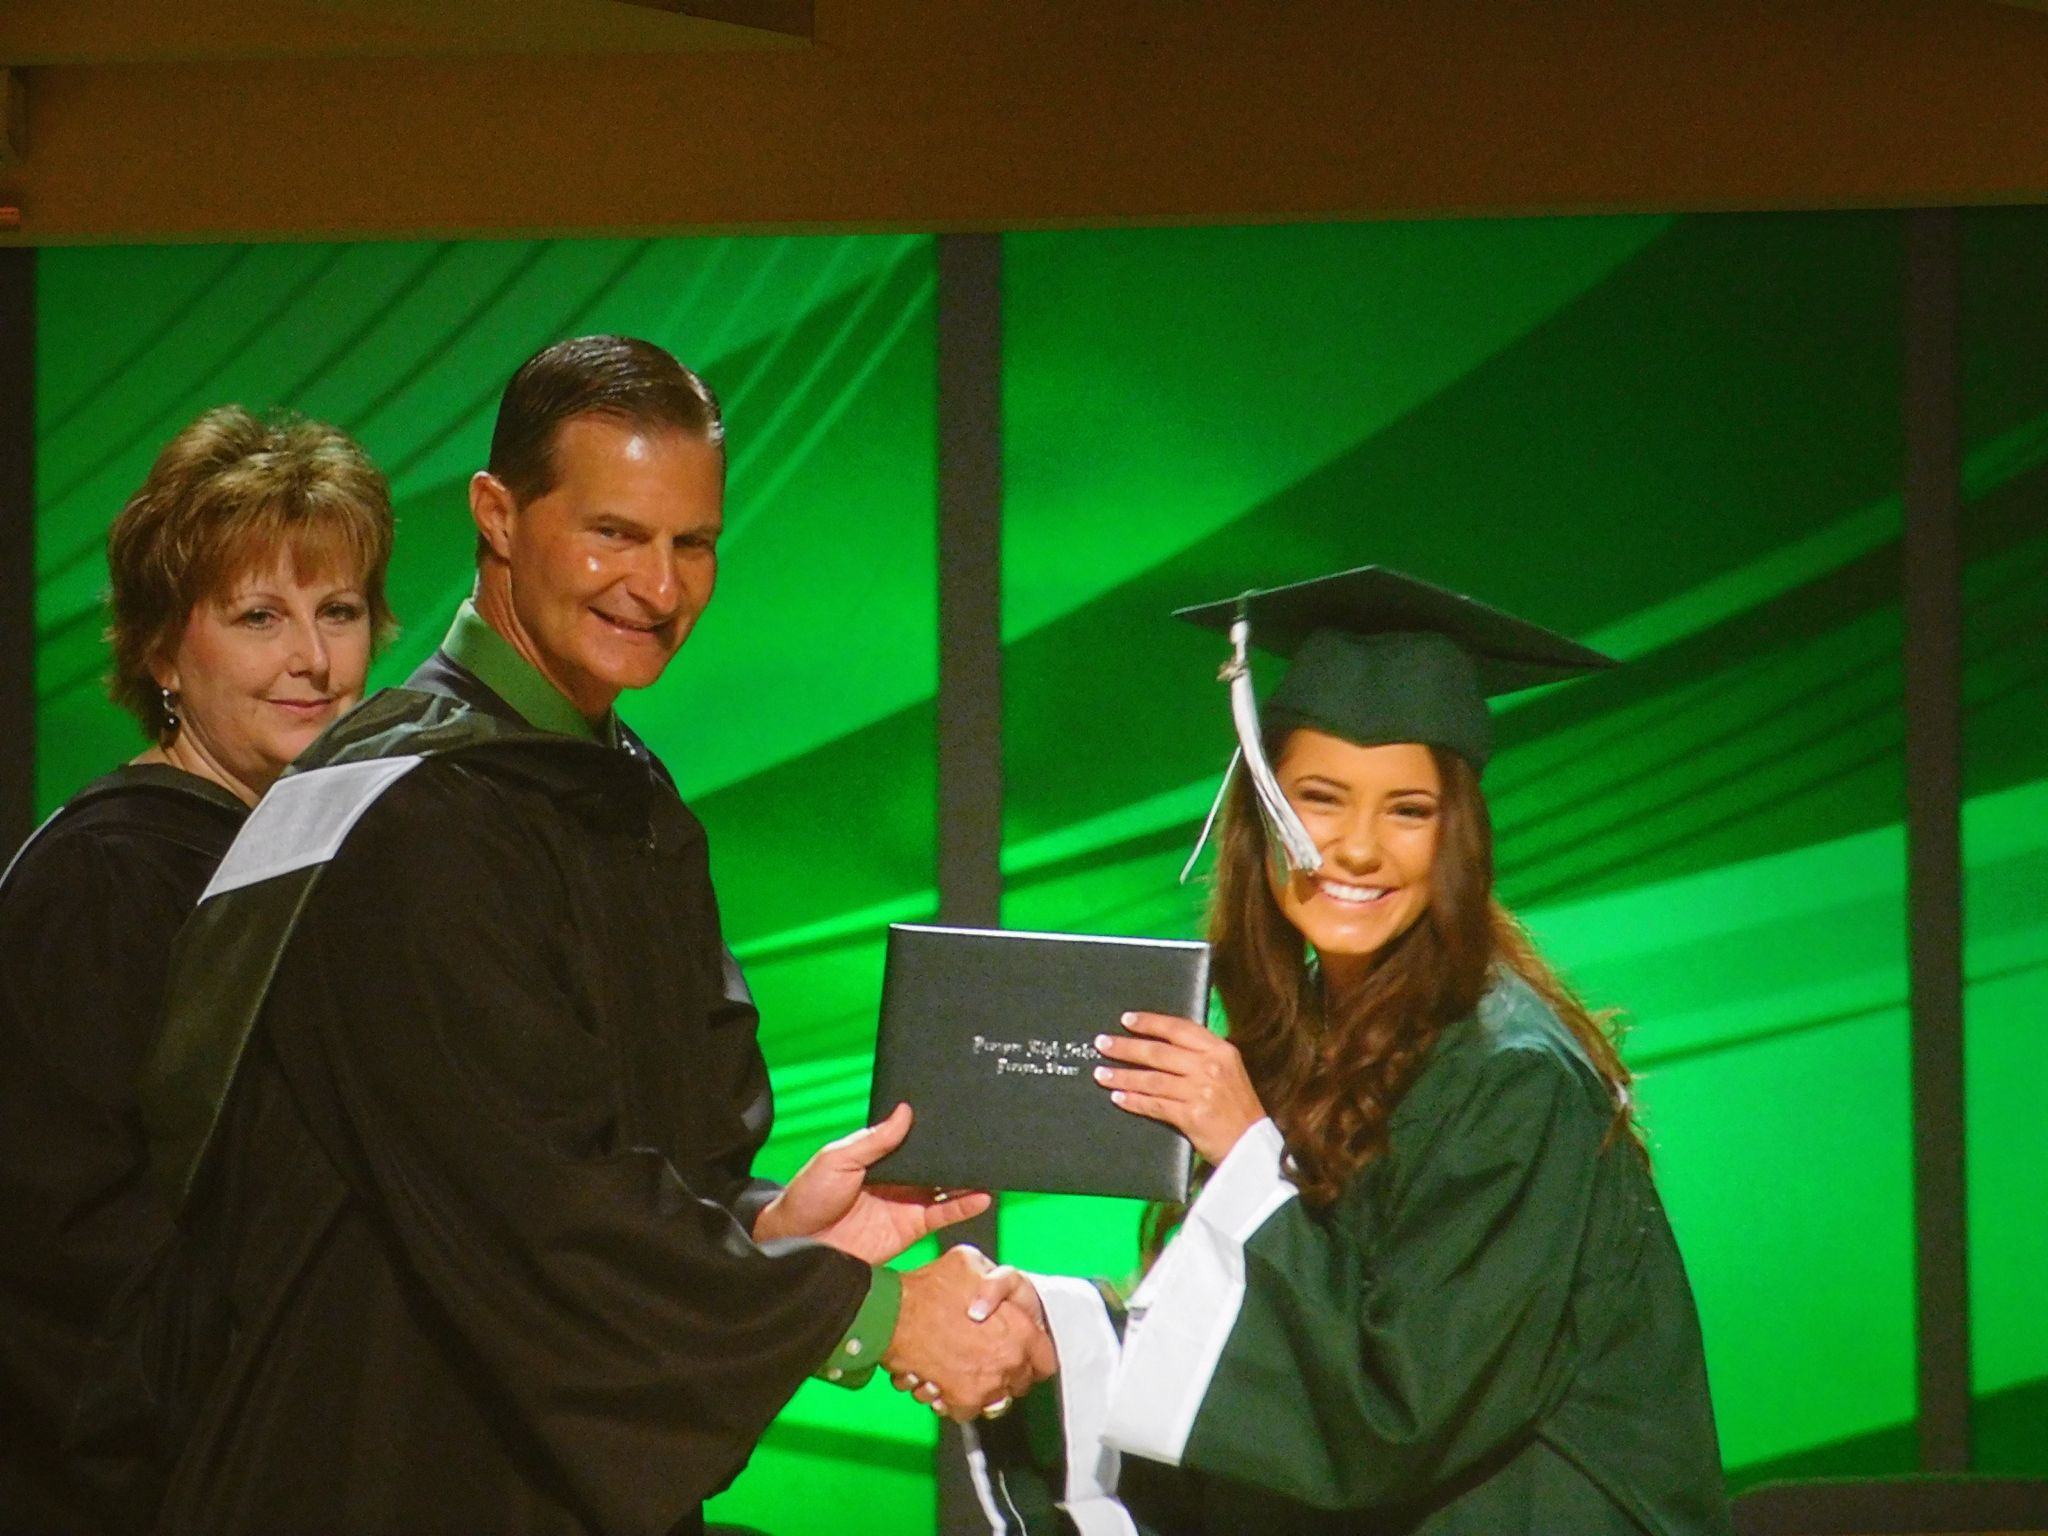 First Grandchild High School graduate!